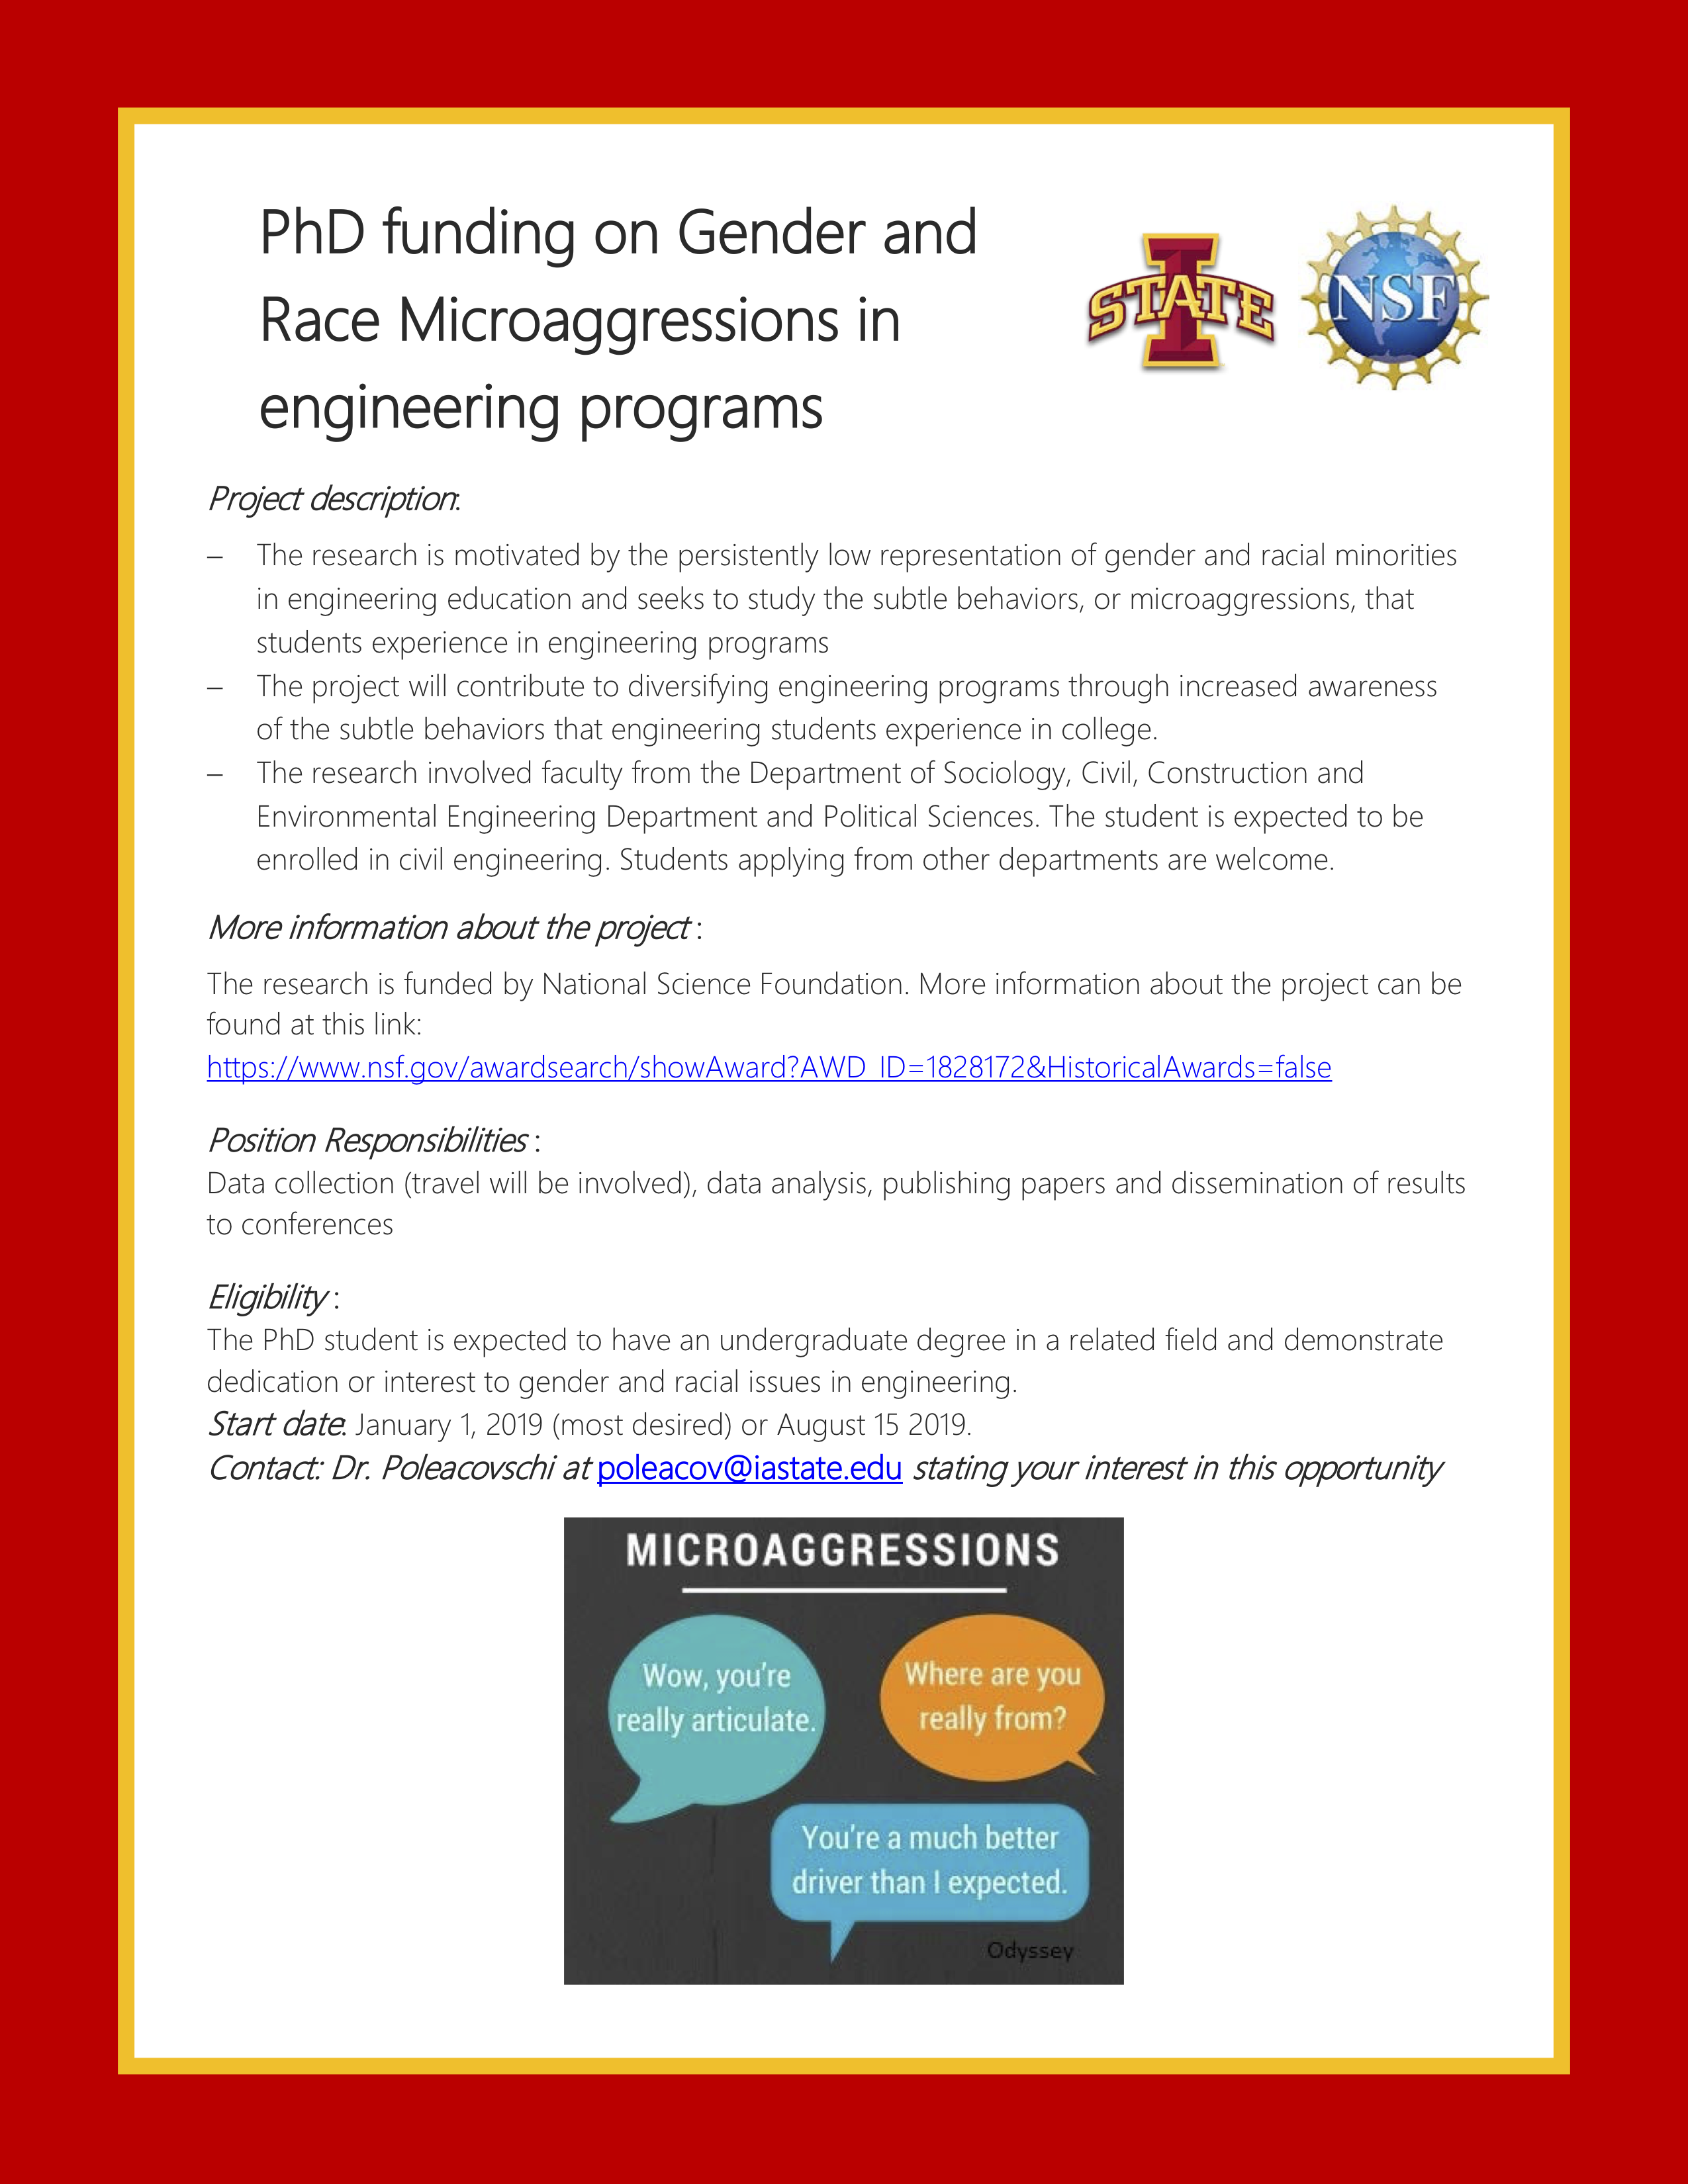 PhD Position for Microaggressions in Engineering Programs